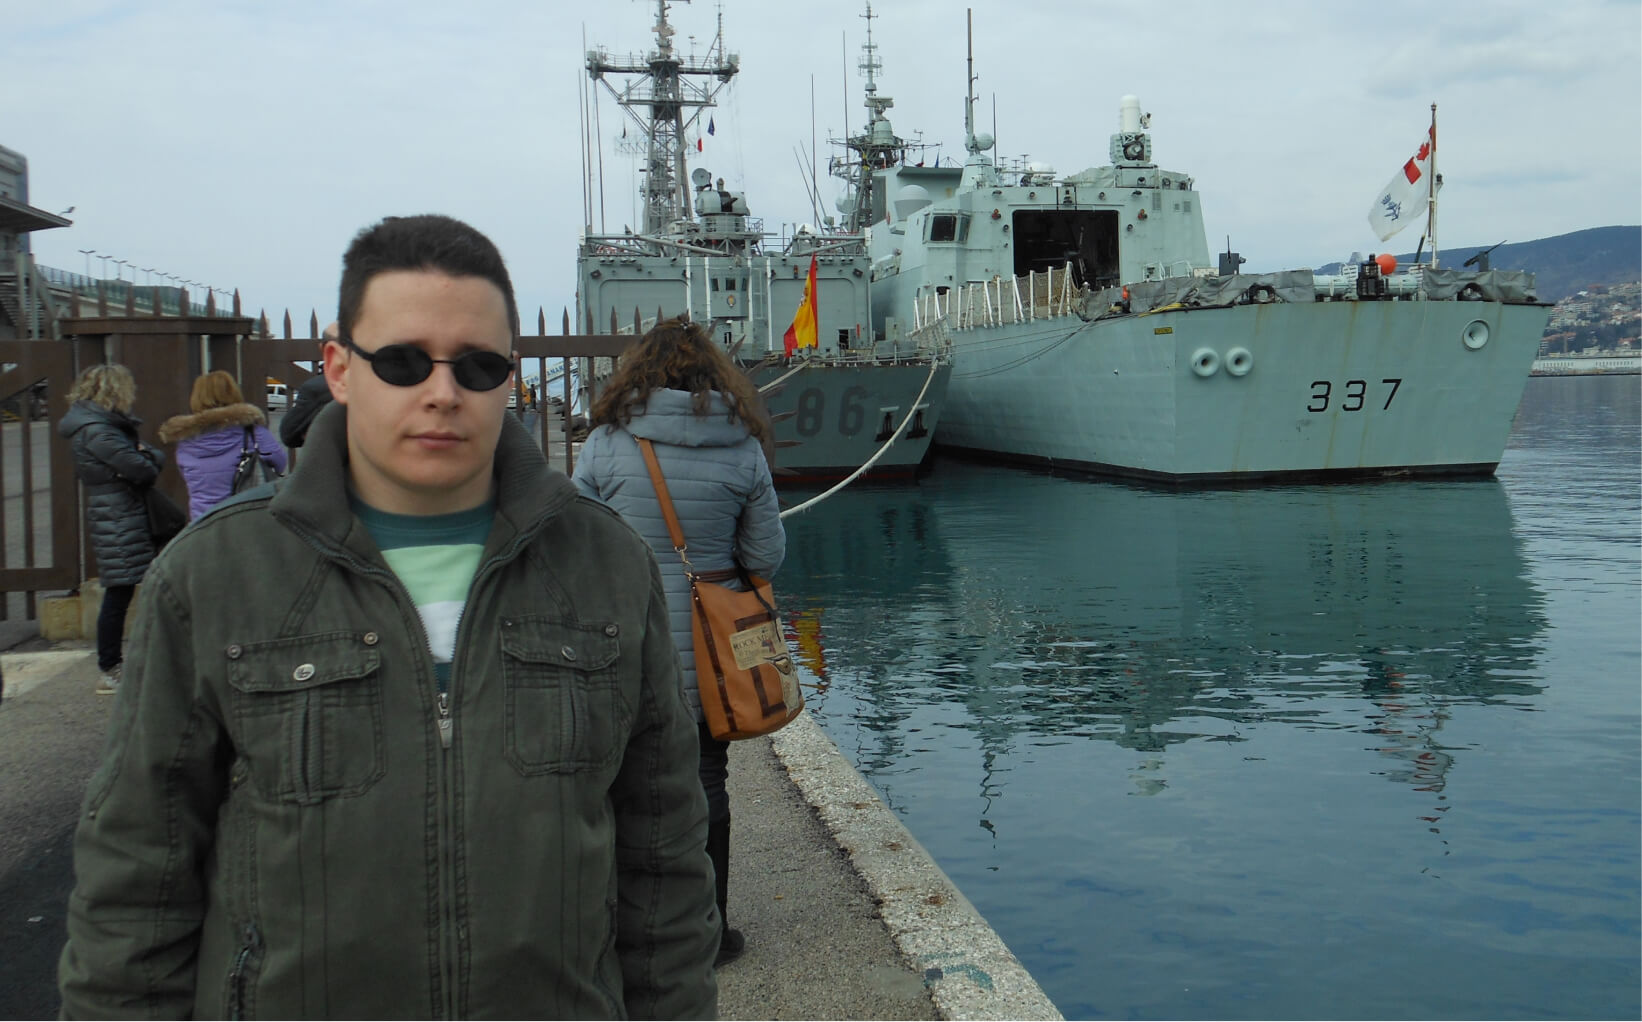 Milos standing at a harbor front with two large ships behind him.